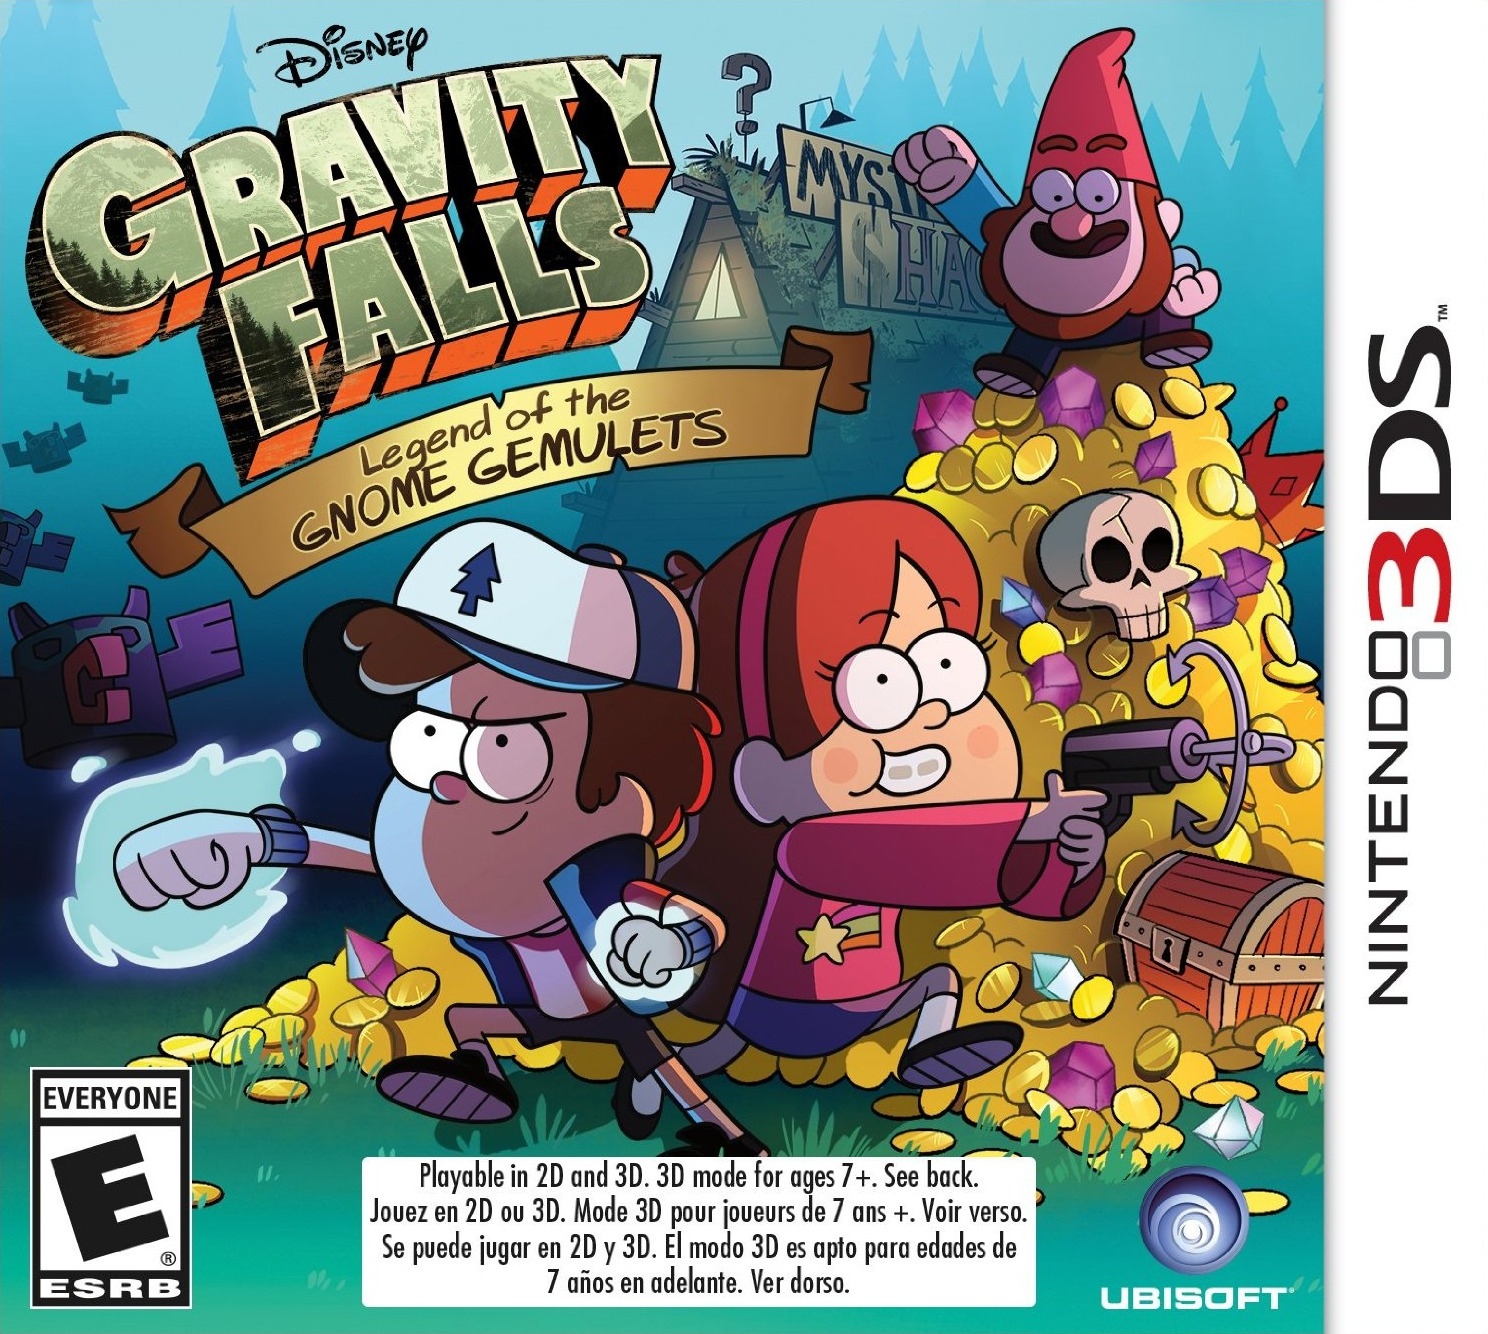 Gravity Falls: Legend of the Gnome Gemulets | Gravity Falls